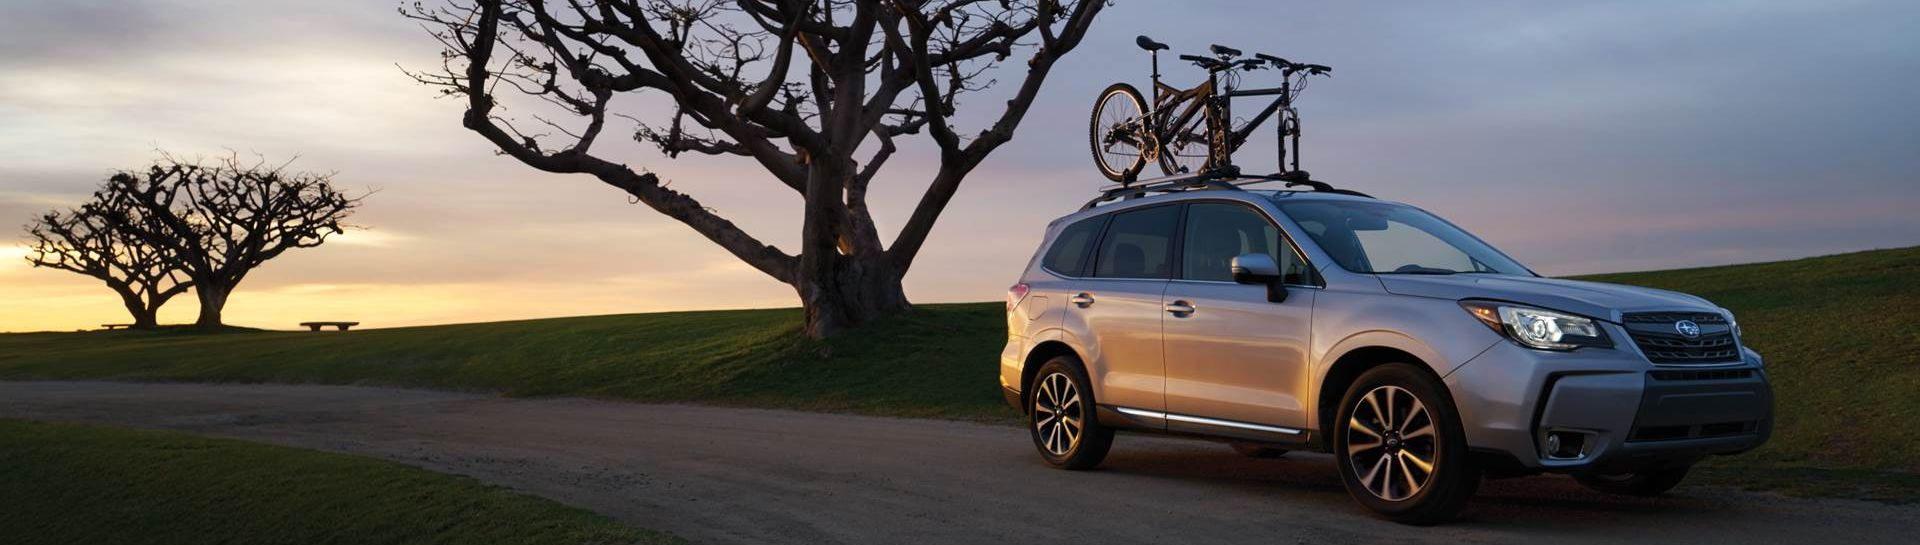 2018 Subaru Forester Leasing near Roseville, CA